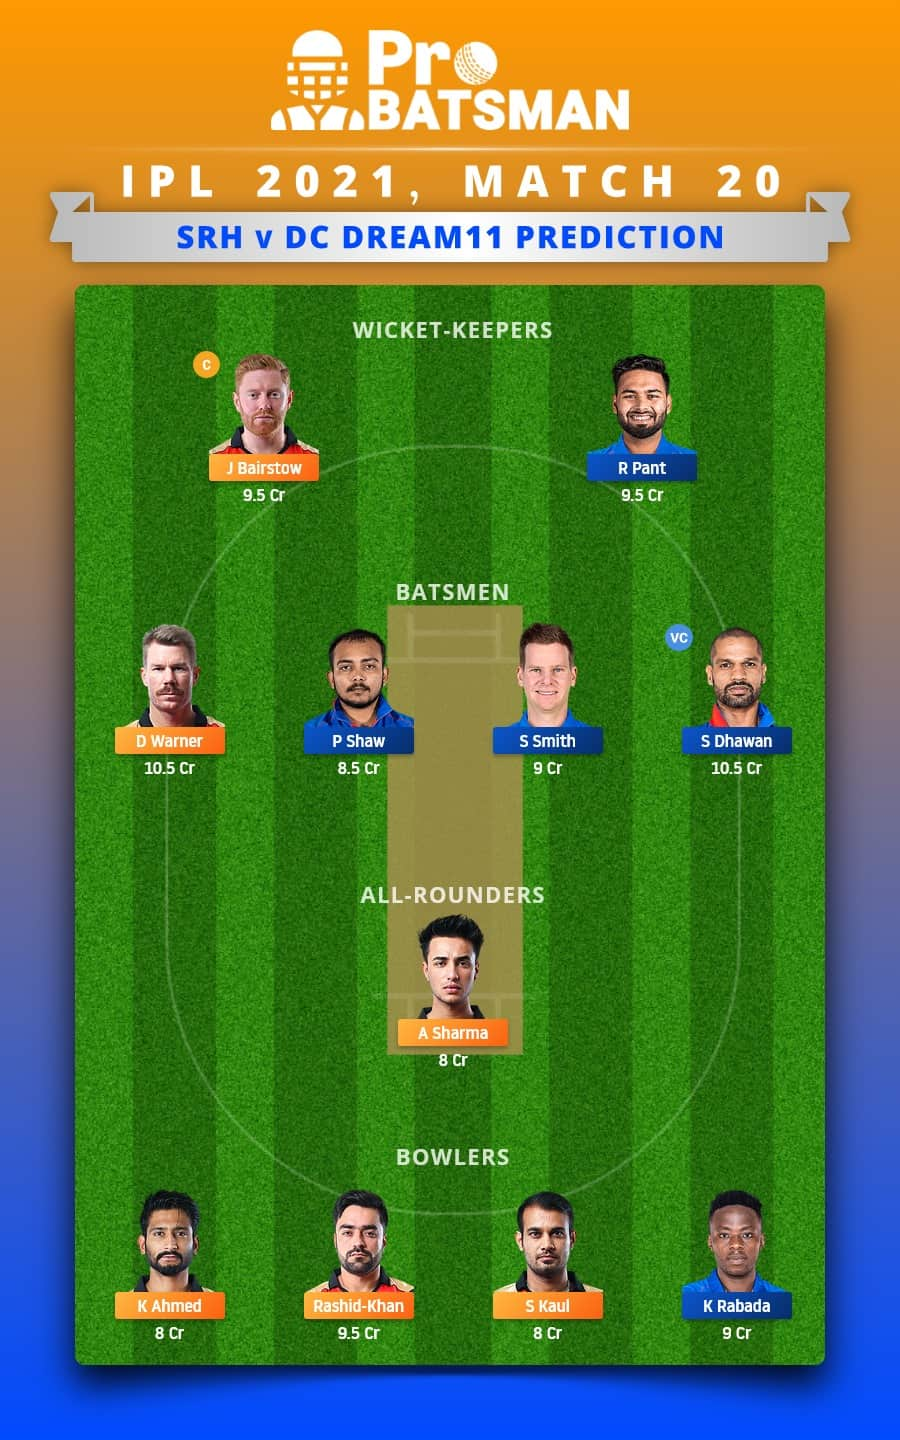 SRH vs DC Dream11 Fantasy Team Prediction